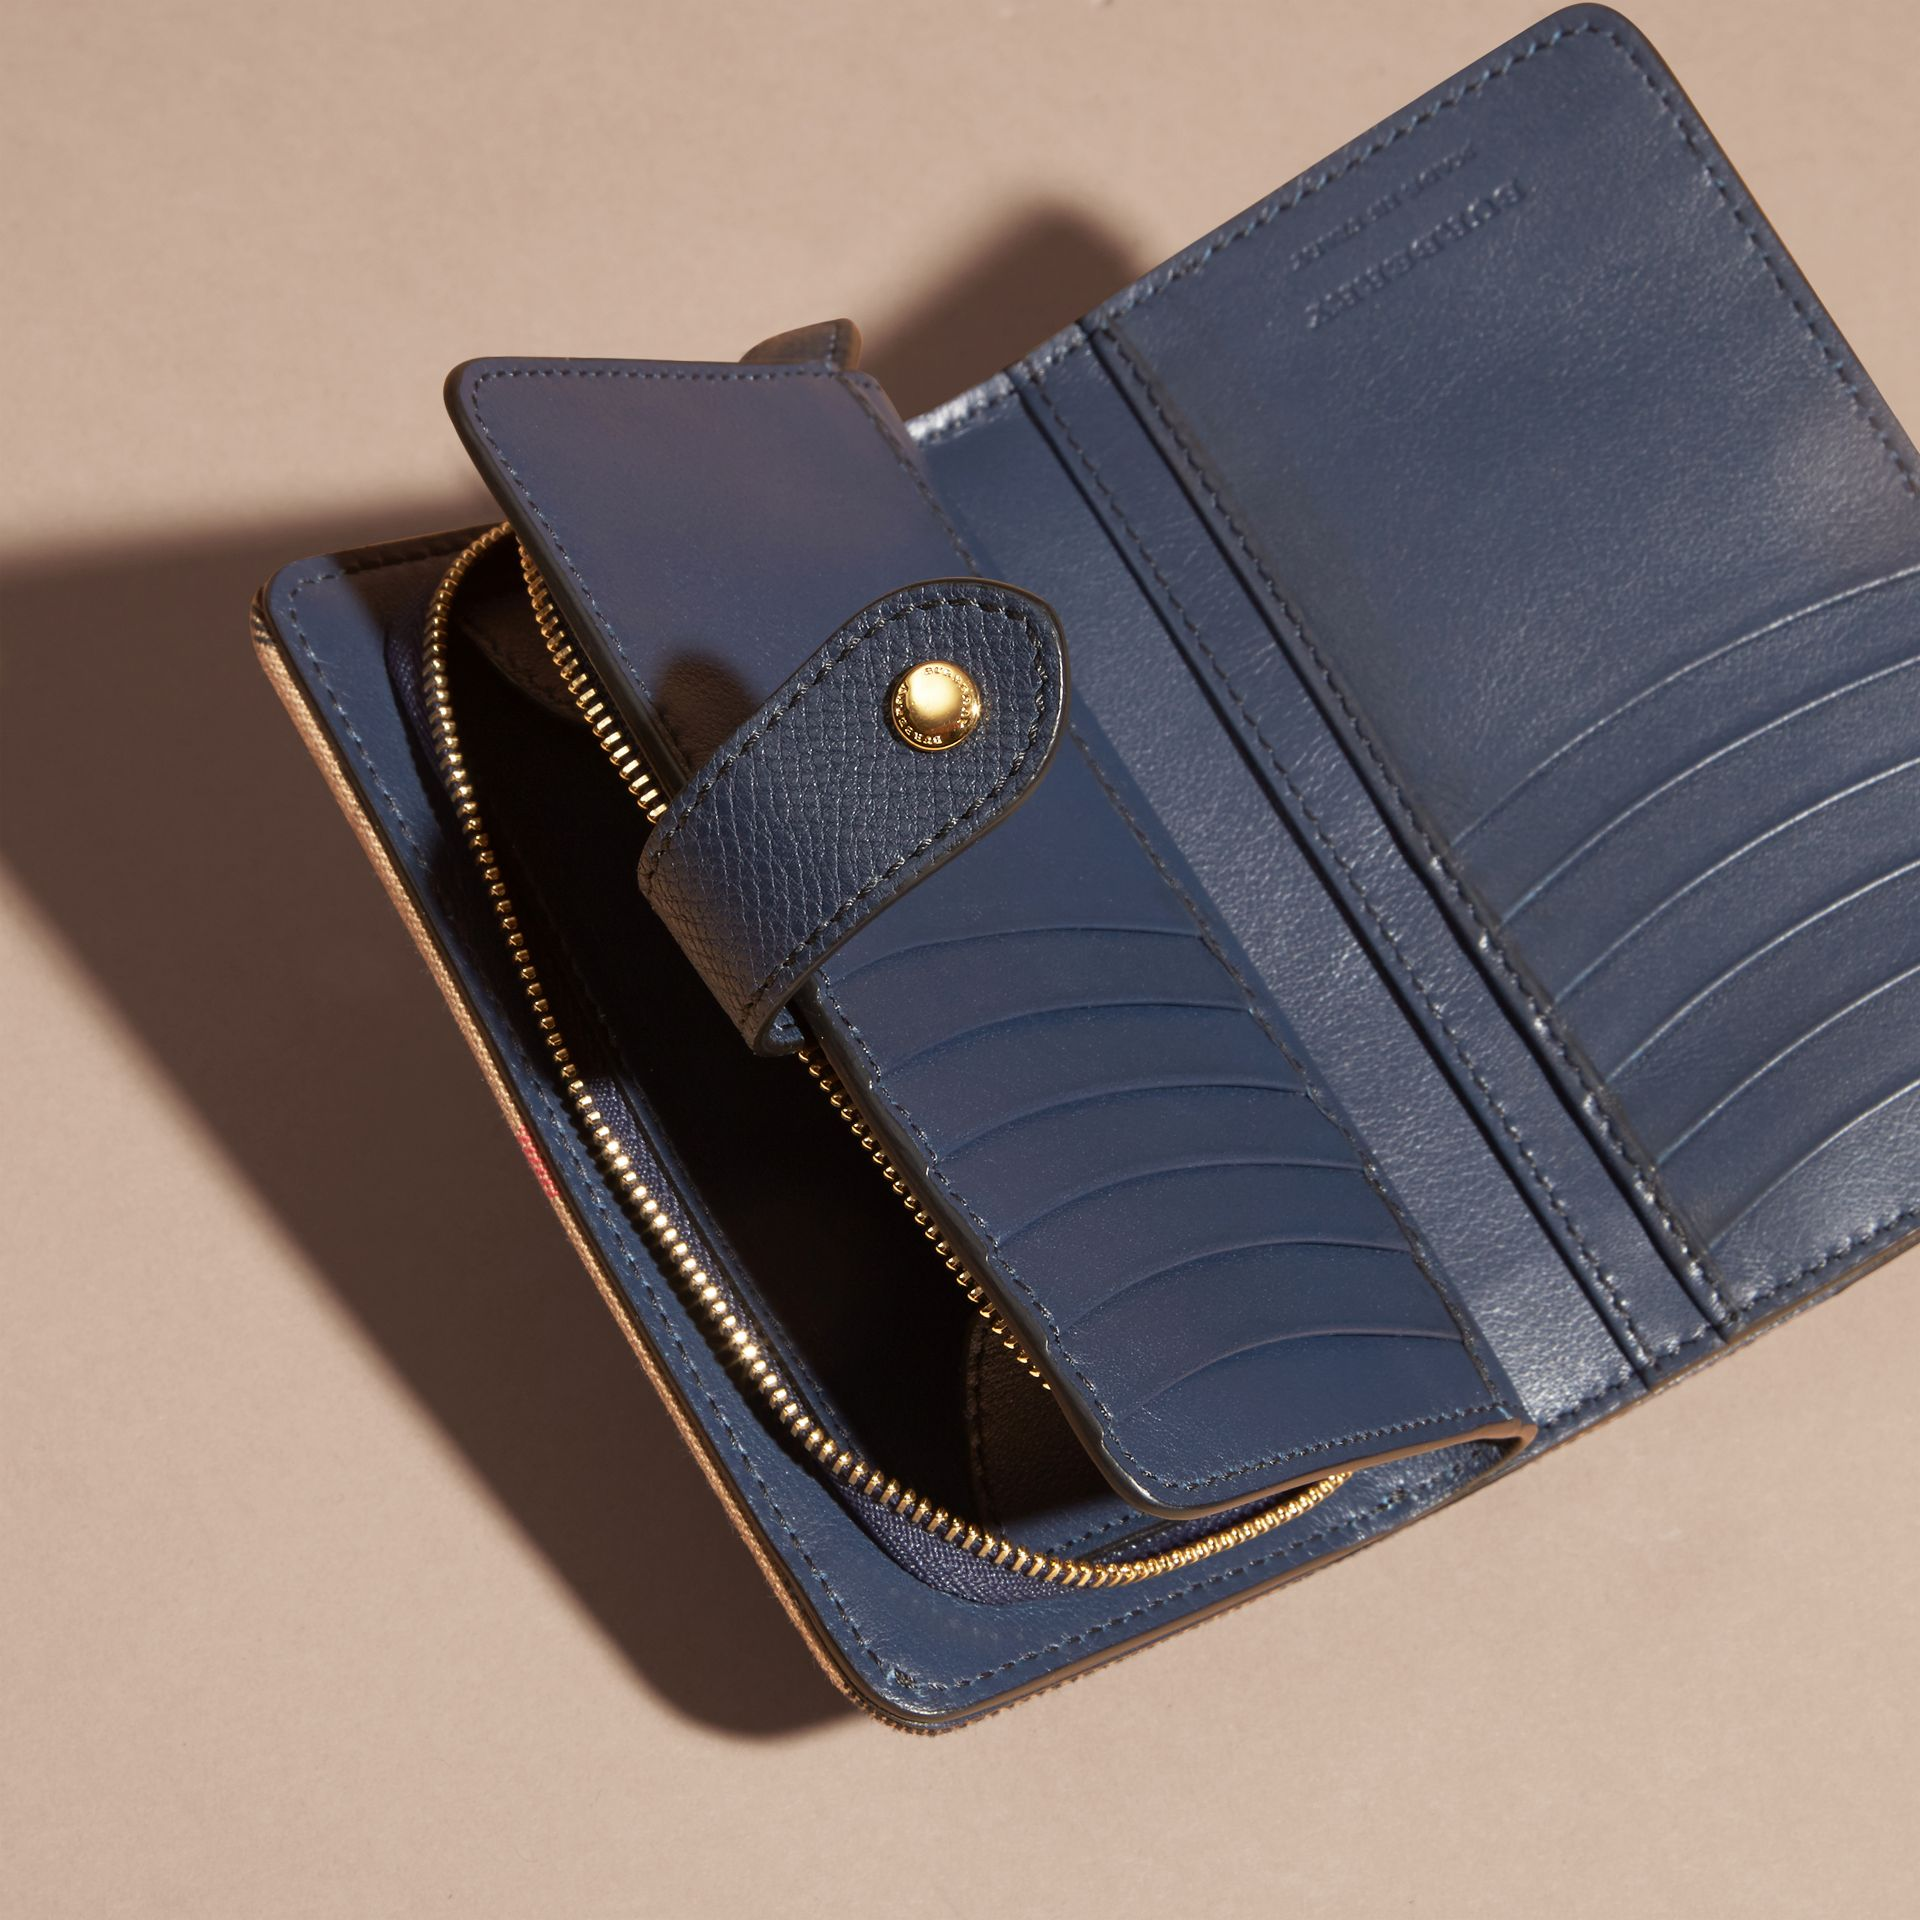 House Check and Leather Wallet in Ink Blue - gallery image 5